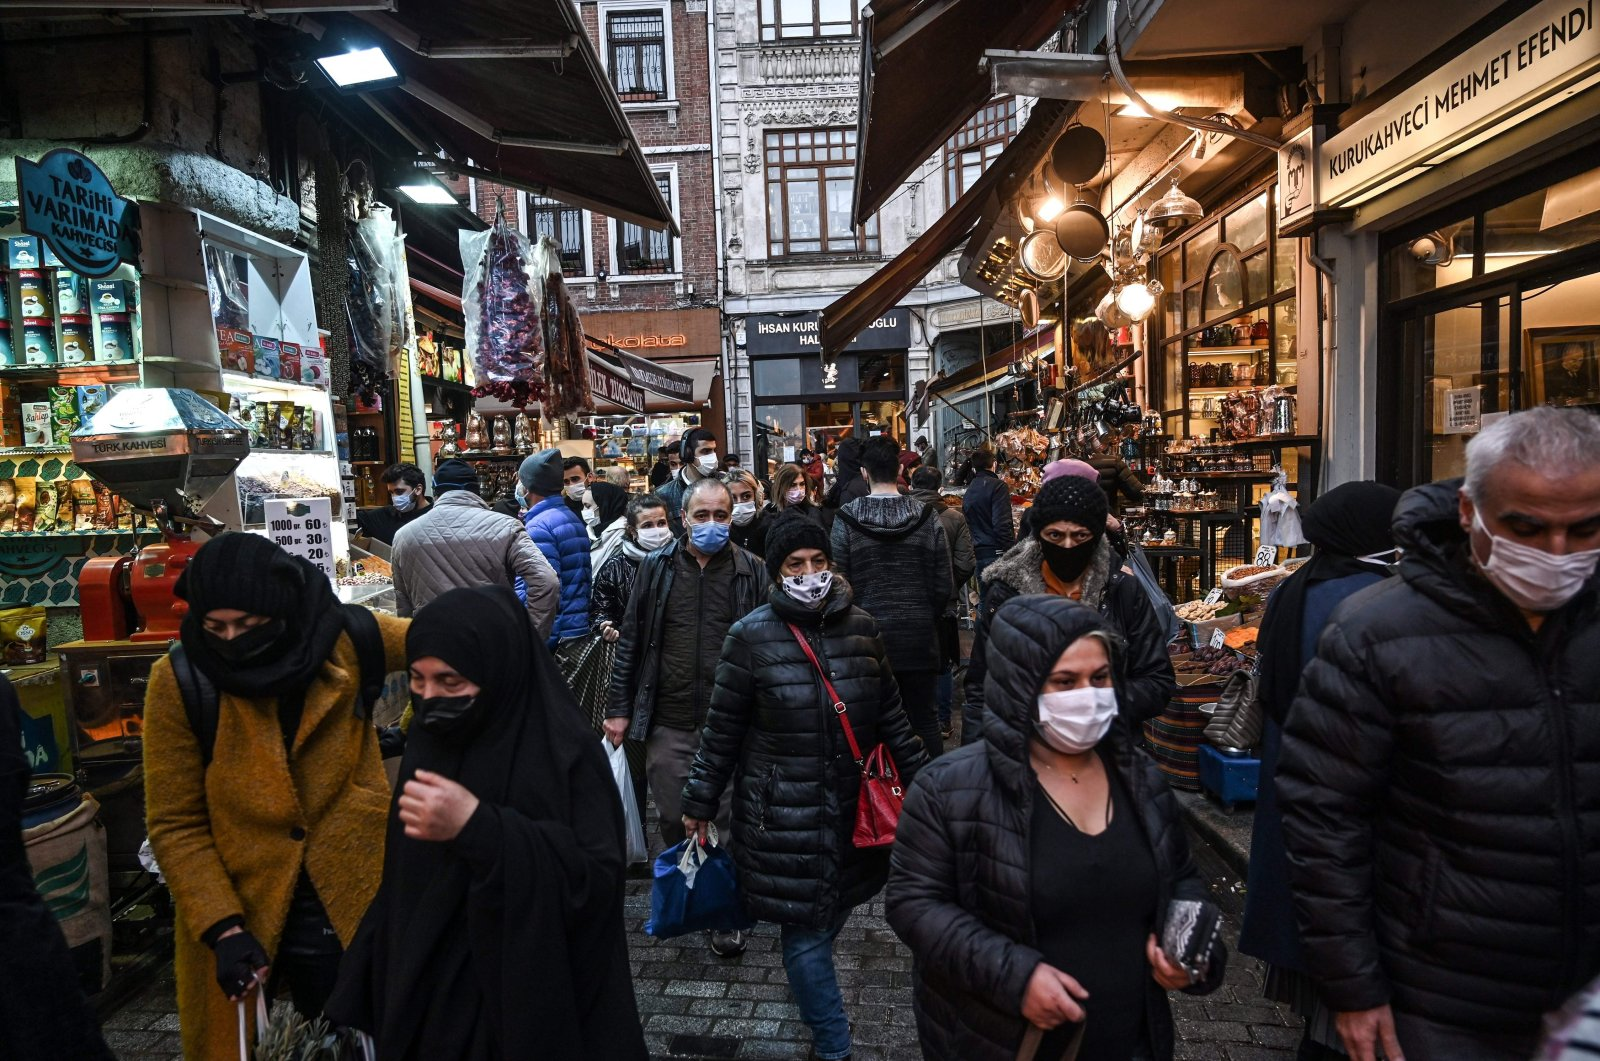 People wear masks while shopping to prevent the spread of COVID-19 in the Eminönü quarter, Fatih district, Istanbul, Turkey, Dec. 14, 2020. (AFP Photo)